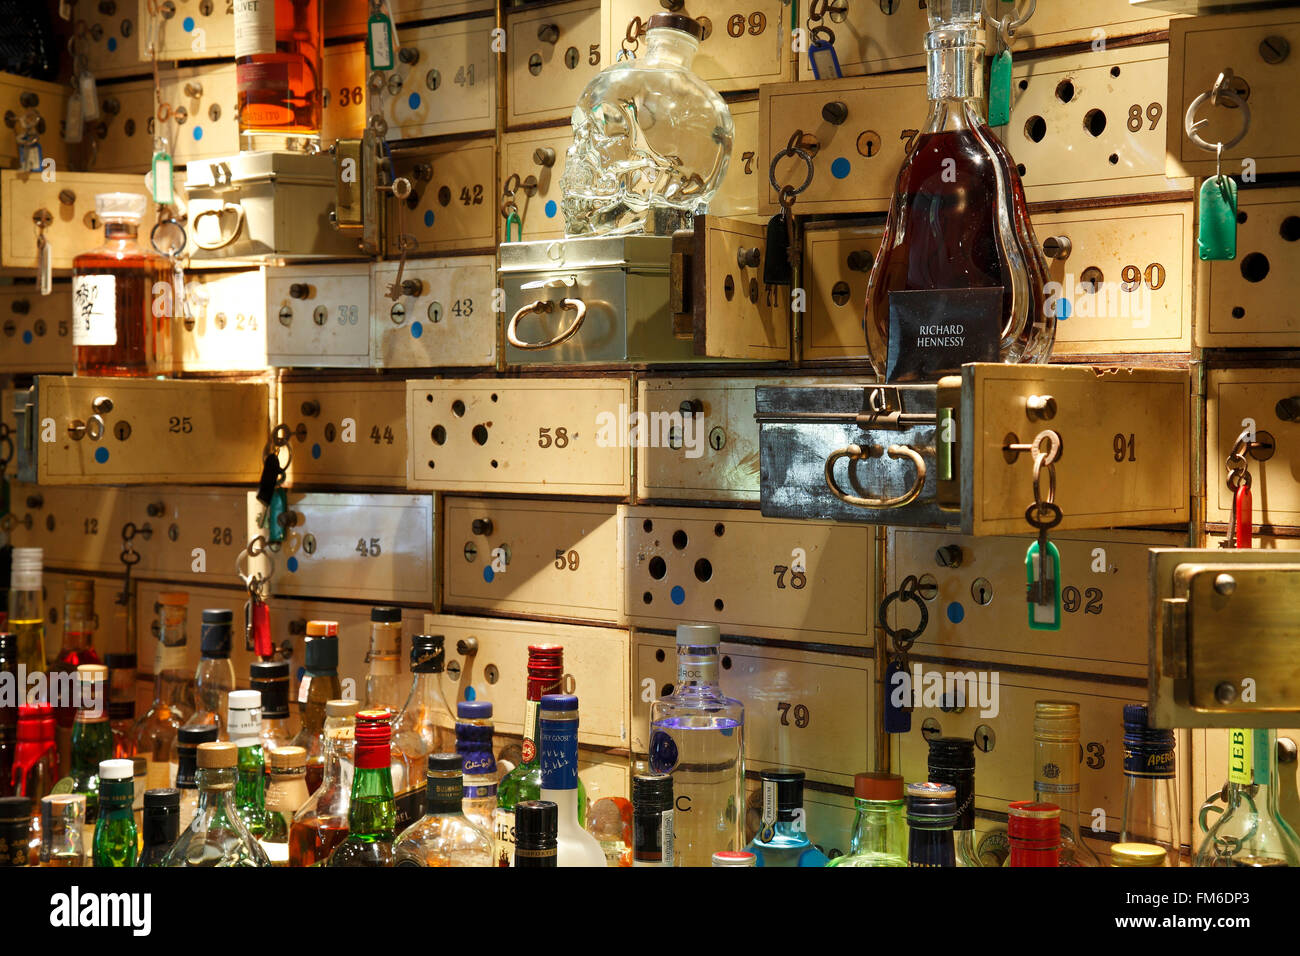 Bottle of spirits and safety deposit boxes. - Stock Image